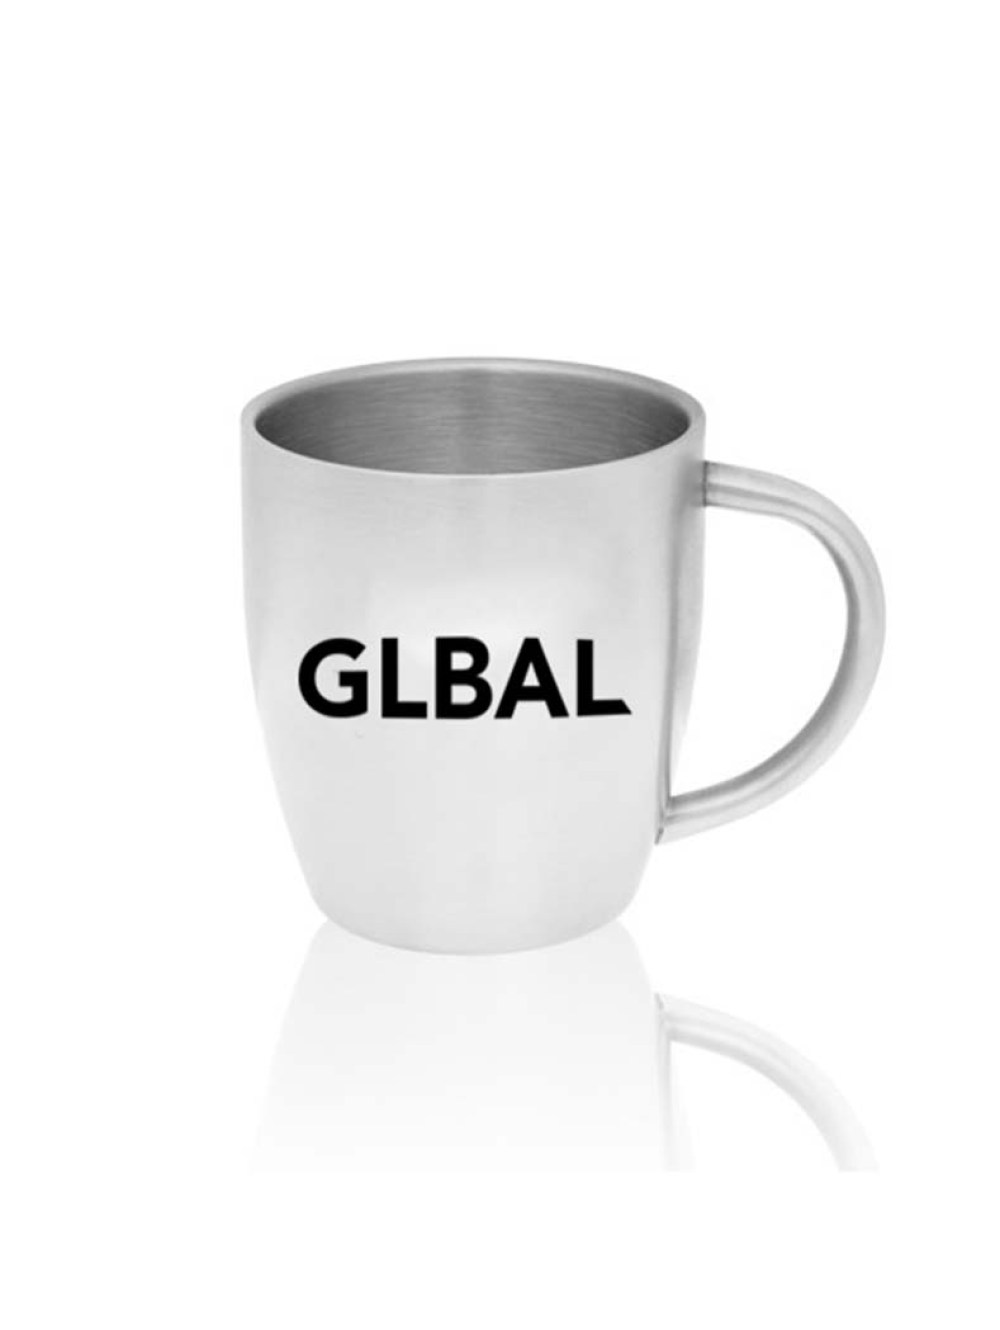 glbal coffee mug